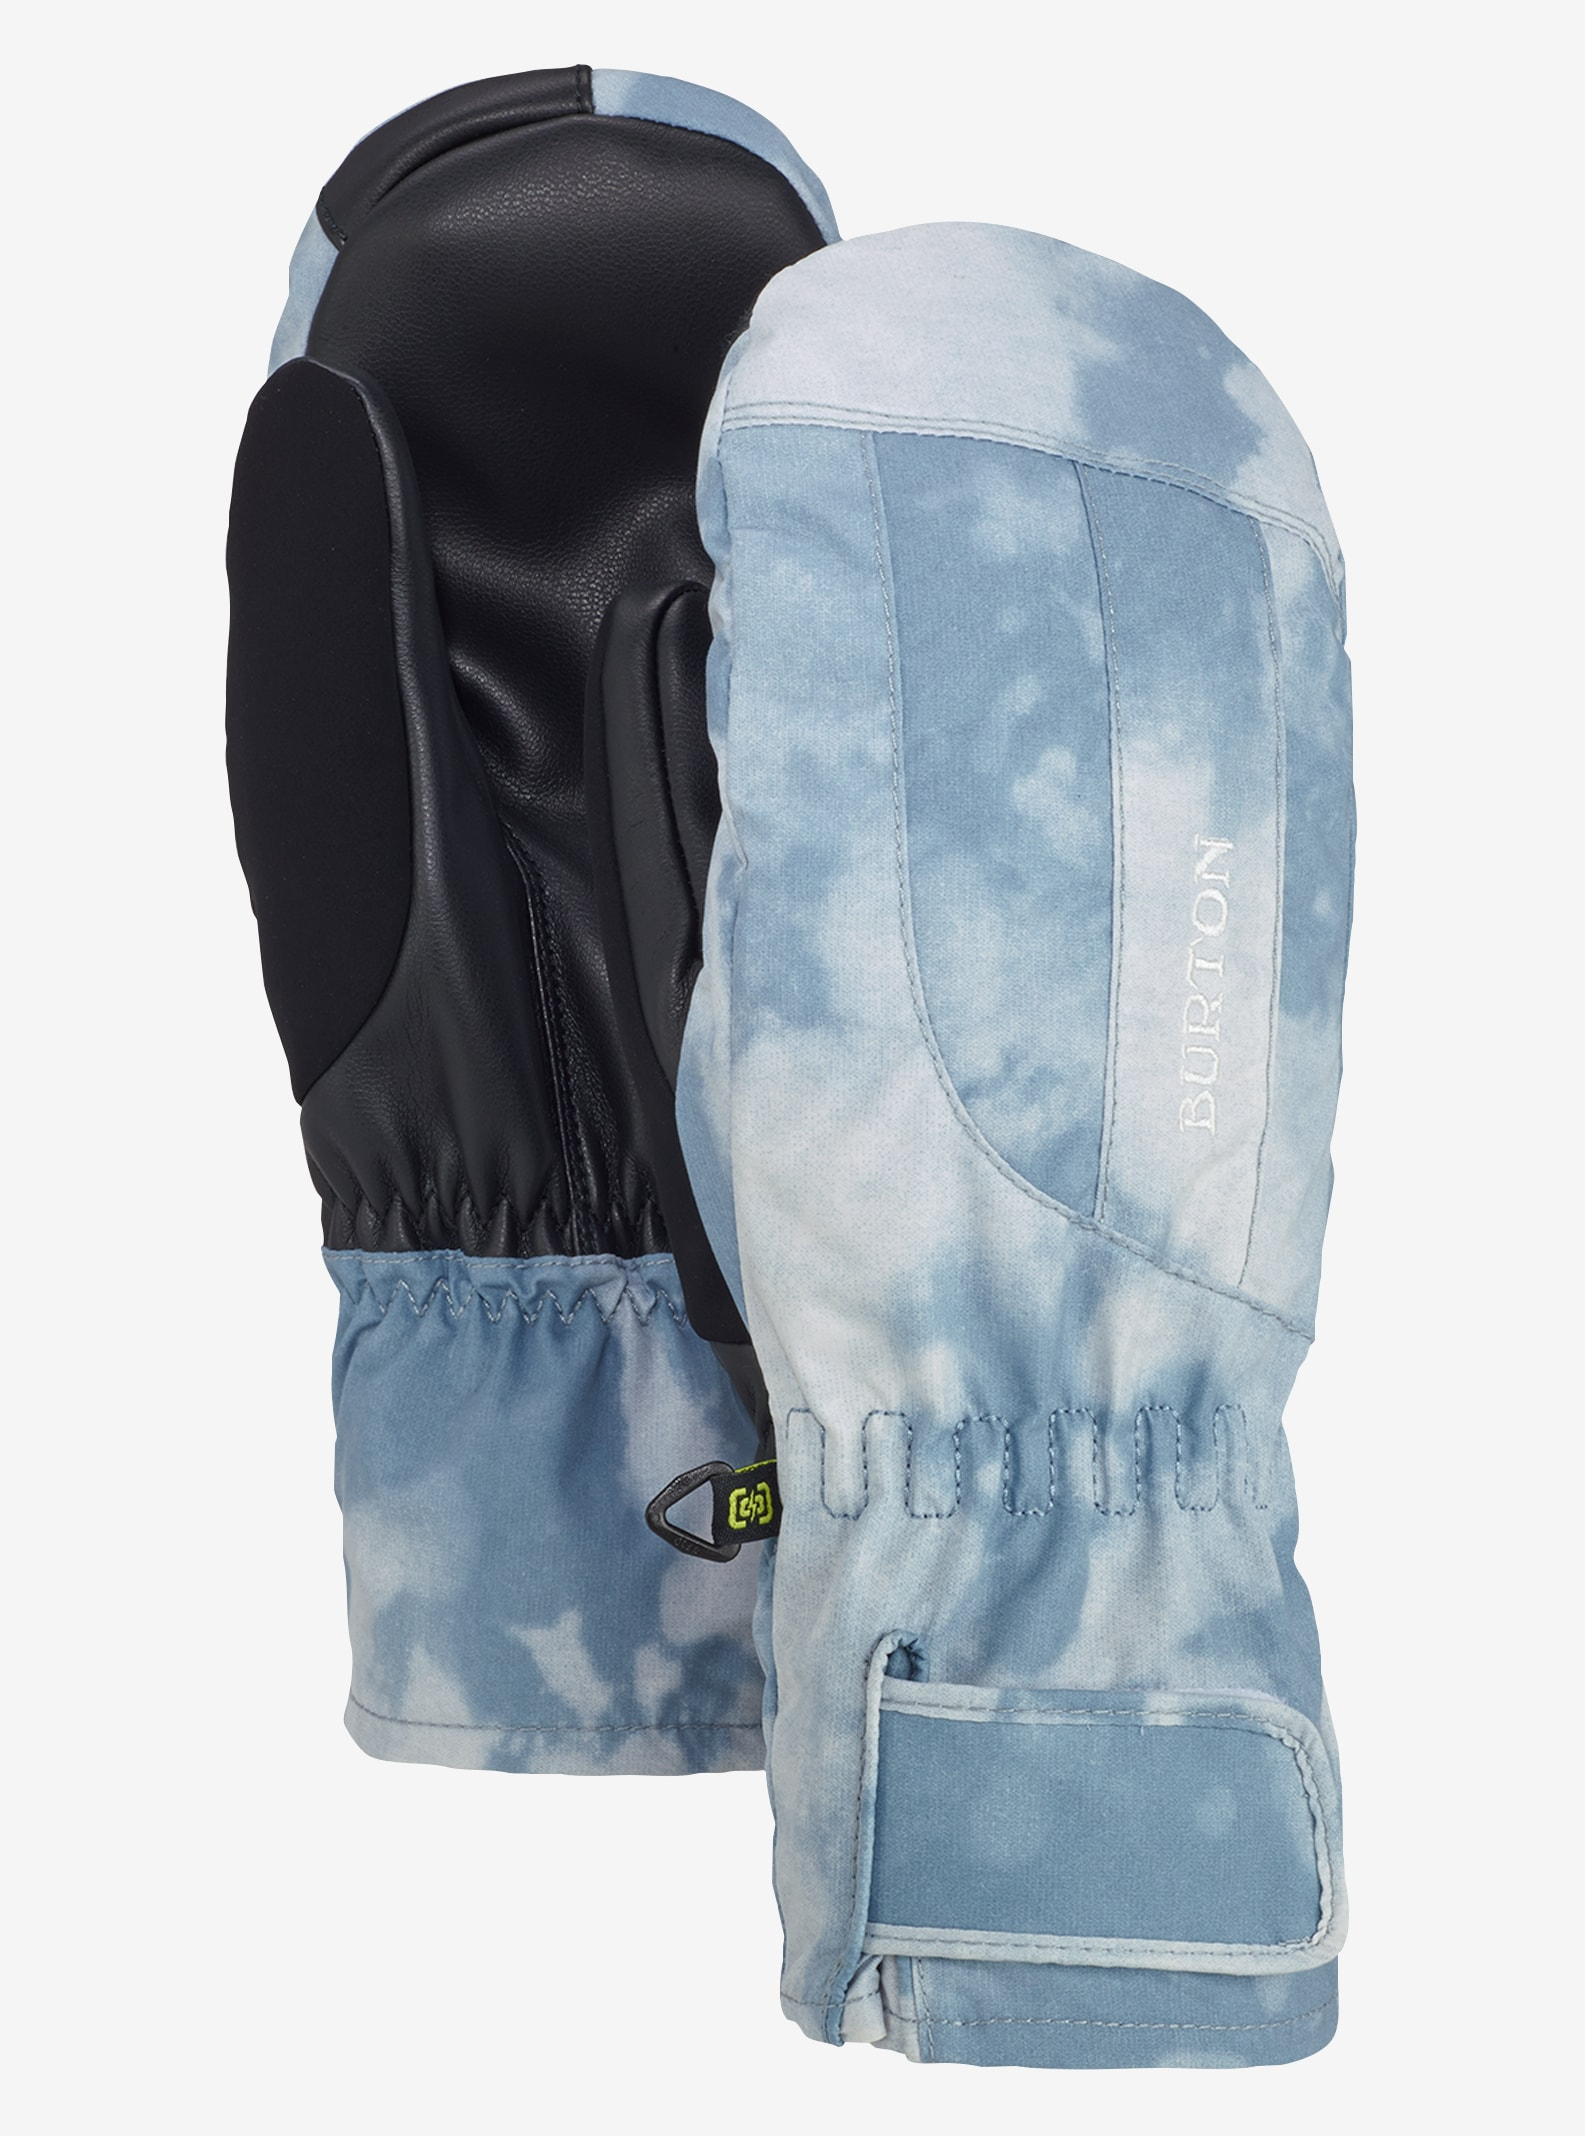 Women's Burton Women's Profile Under Mitt shown in Bleached